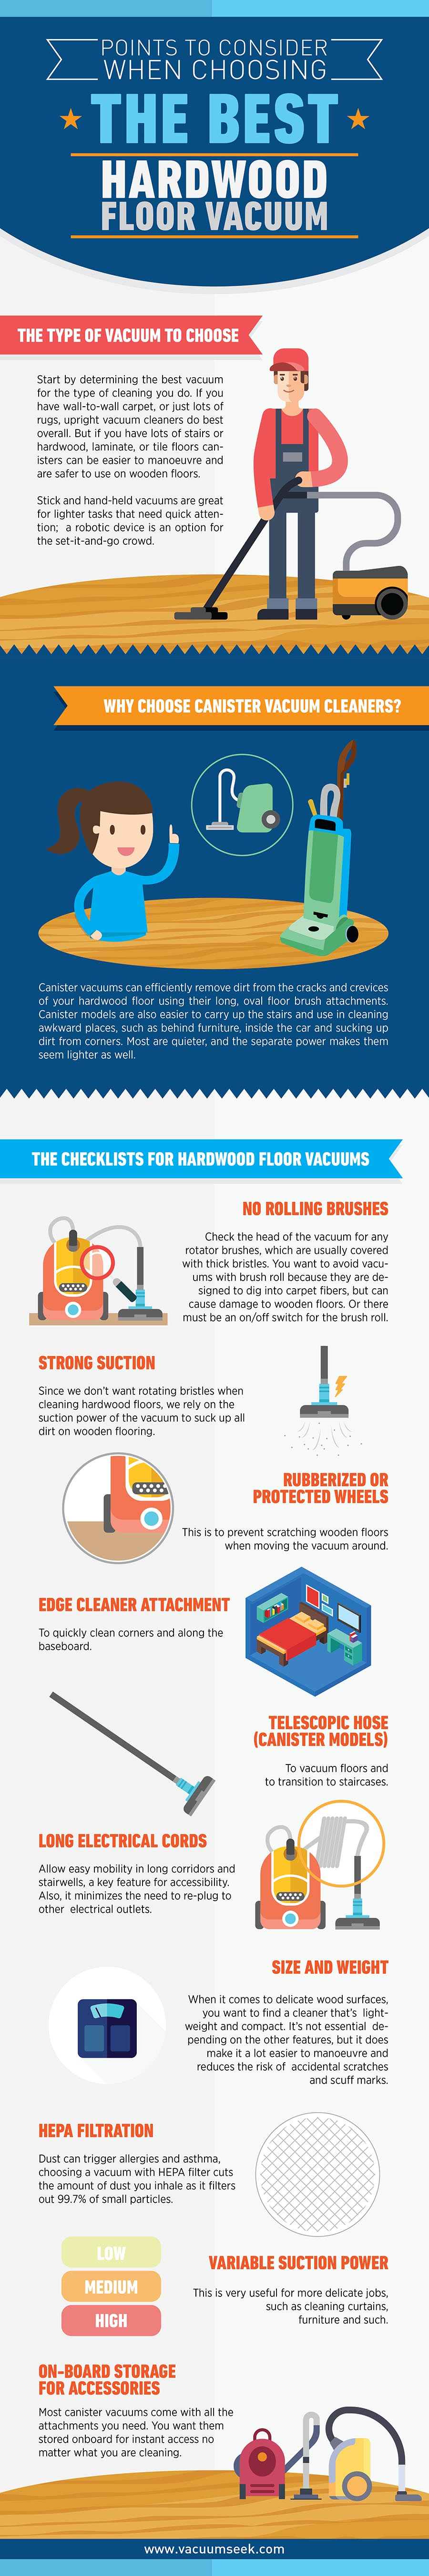 Finding the Best Vacuum for Hardwood Floors